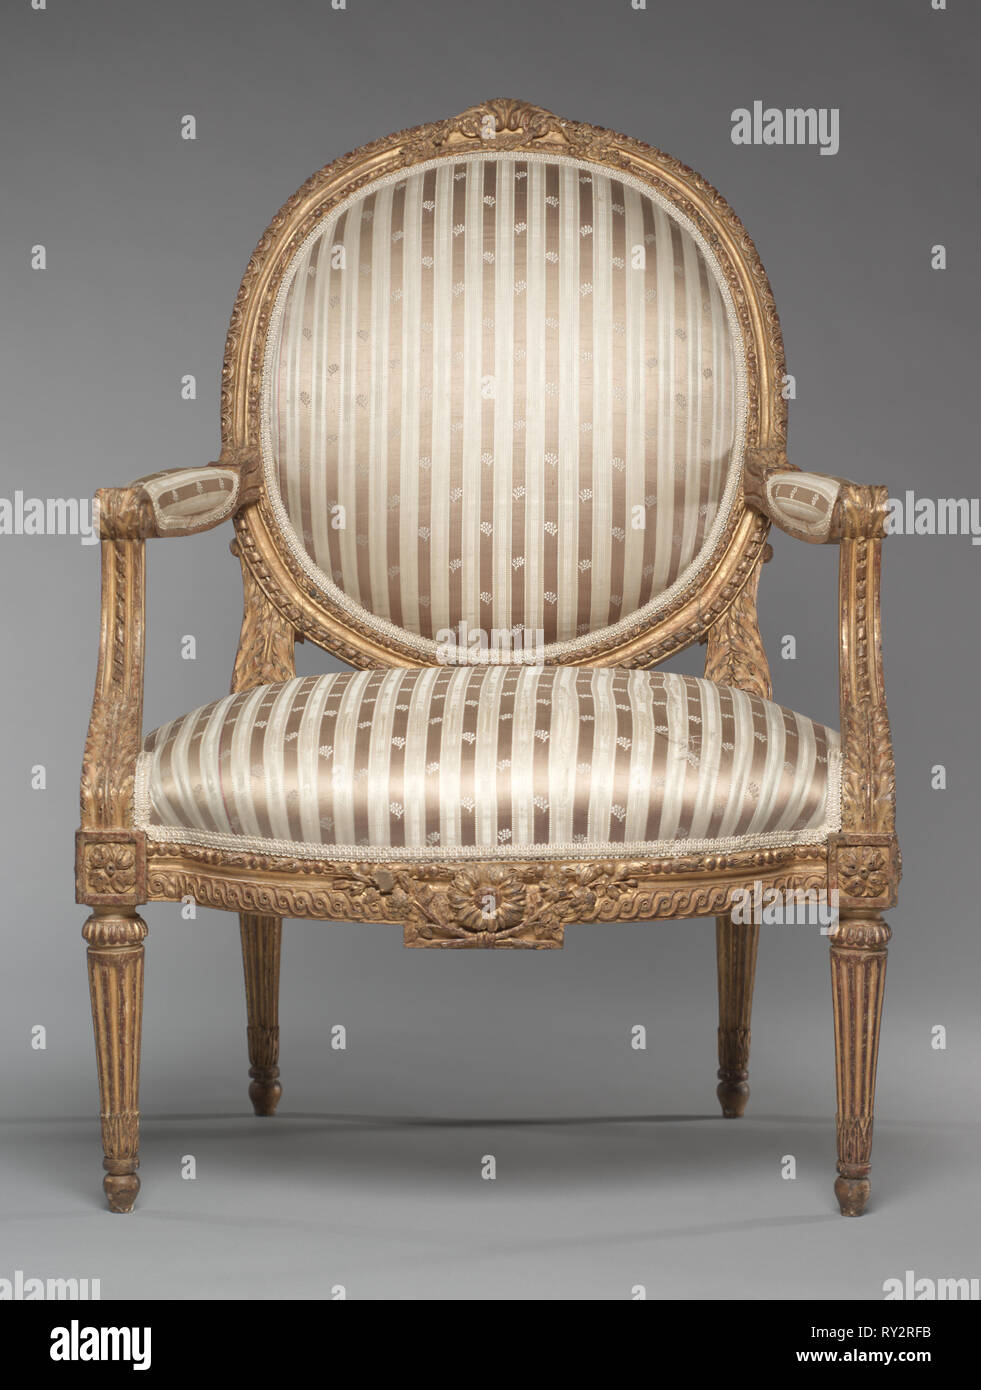 40 Fauteuils Pair Of Armchairs Fauteuils C 1765 Jean Baptiste Ii Tilliard